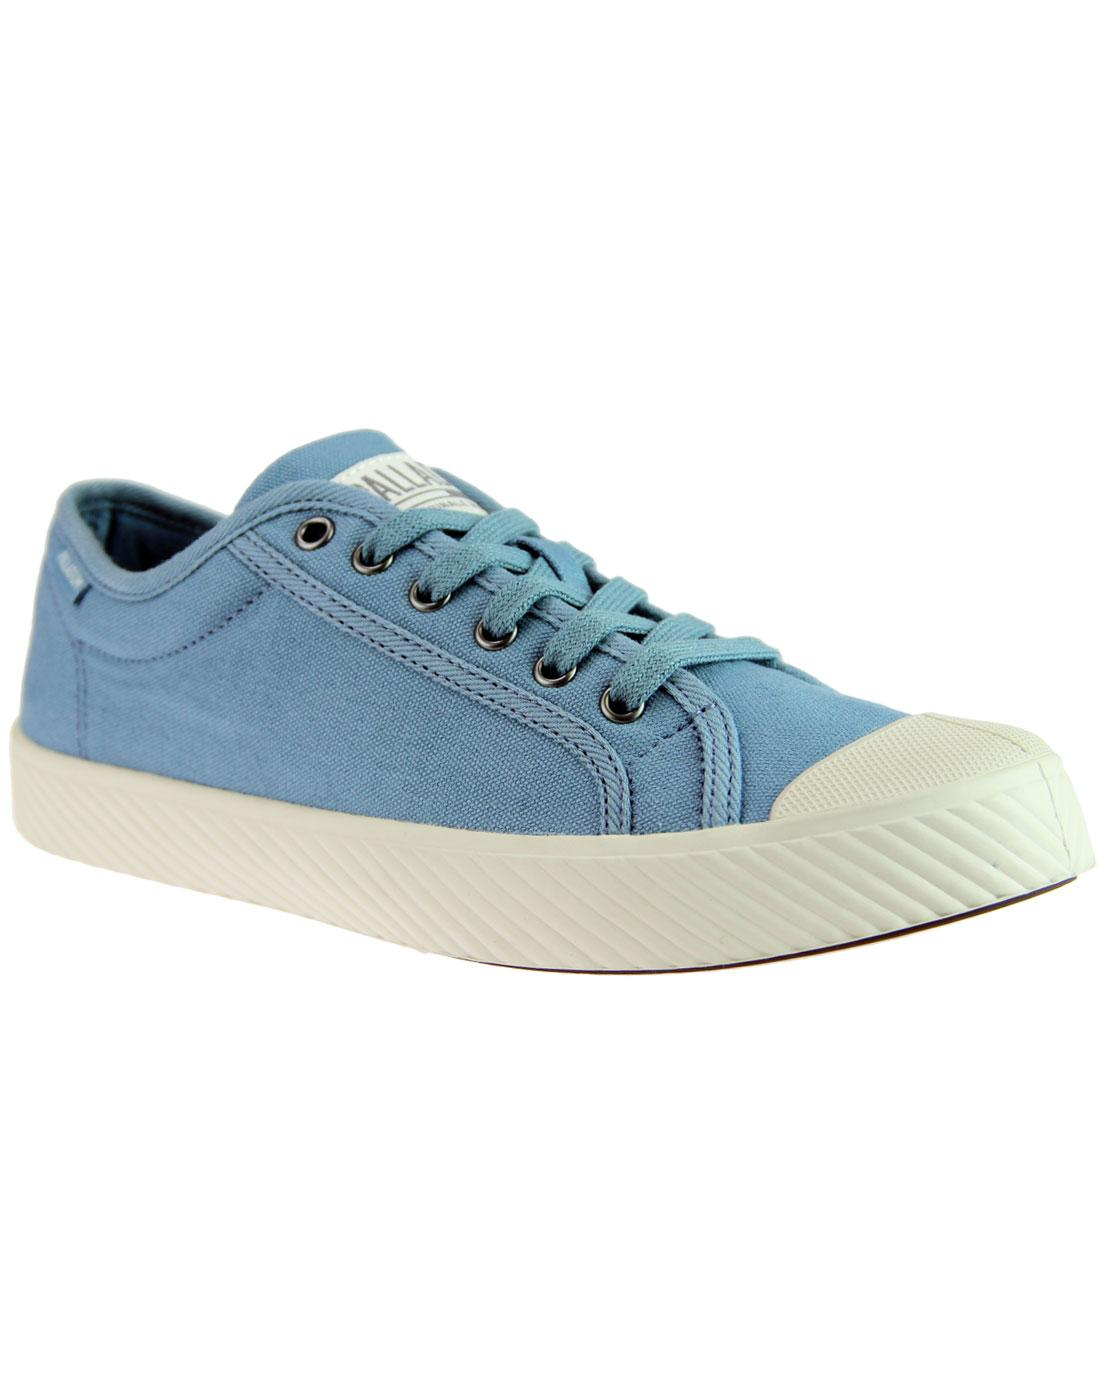 Pallaphoenix PALLADIUM Womens Canvas Trainers BLUE